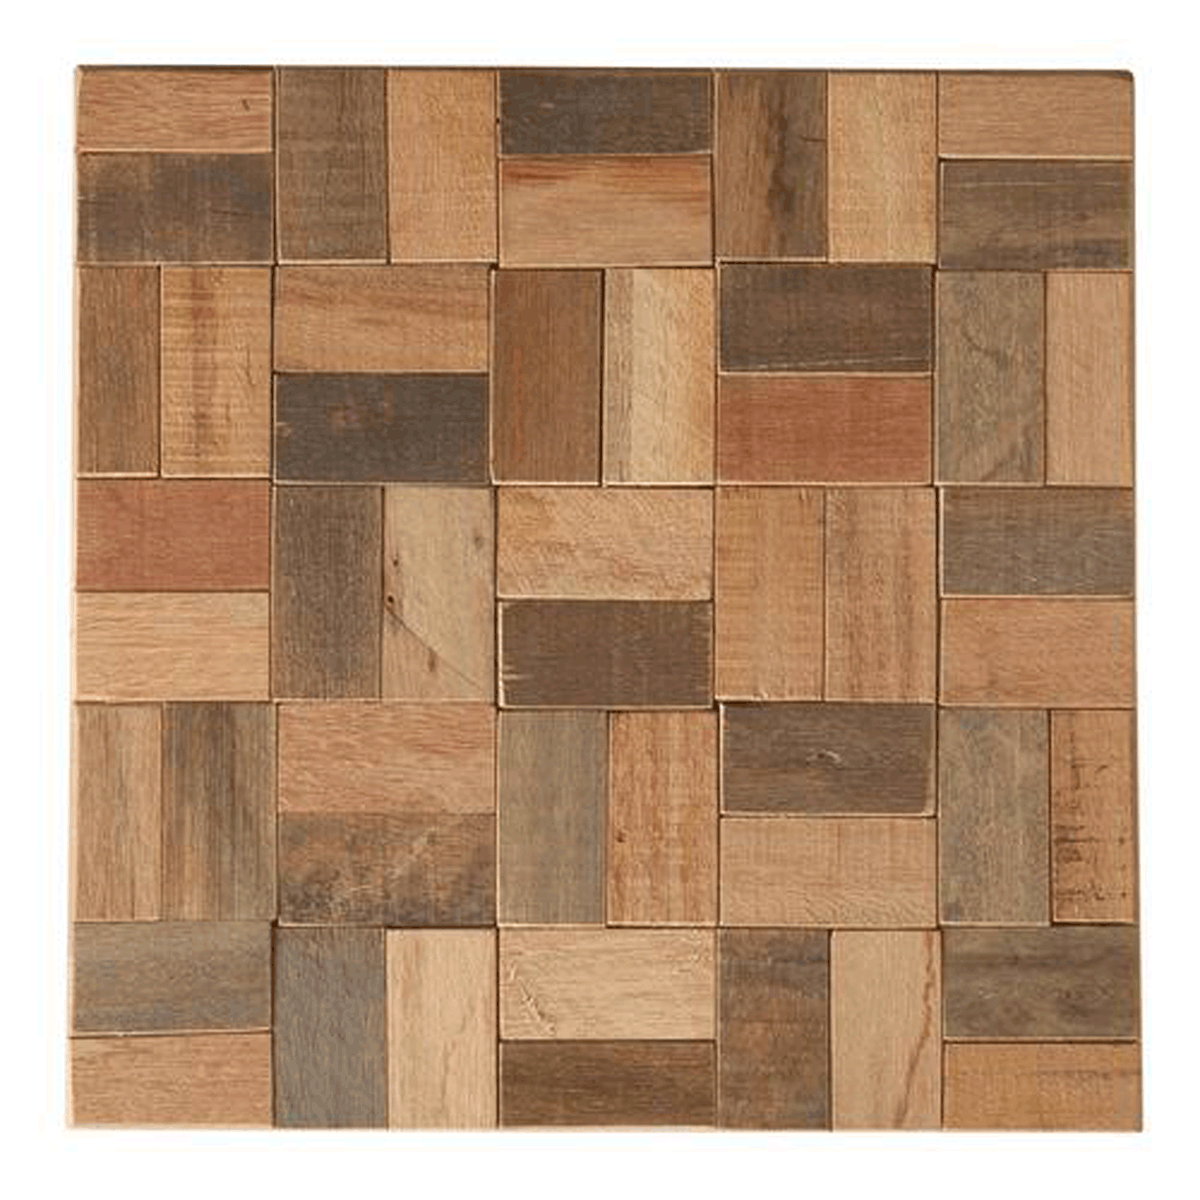 Wood Mosaic Square Wall Tiles Natural 12x12x2 5 Decorative Tiles Products Wood Mosaic Rug Sets Decorative Tile